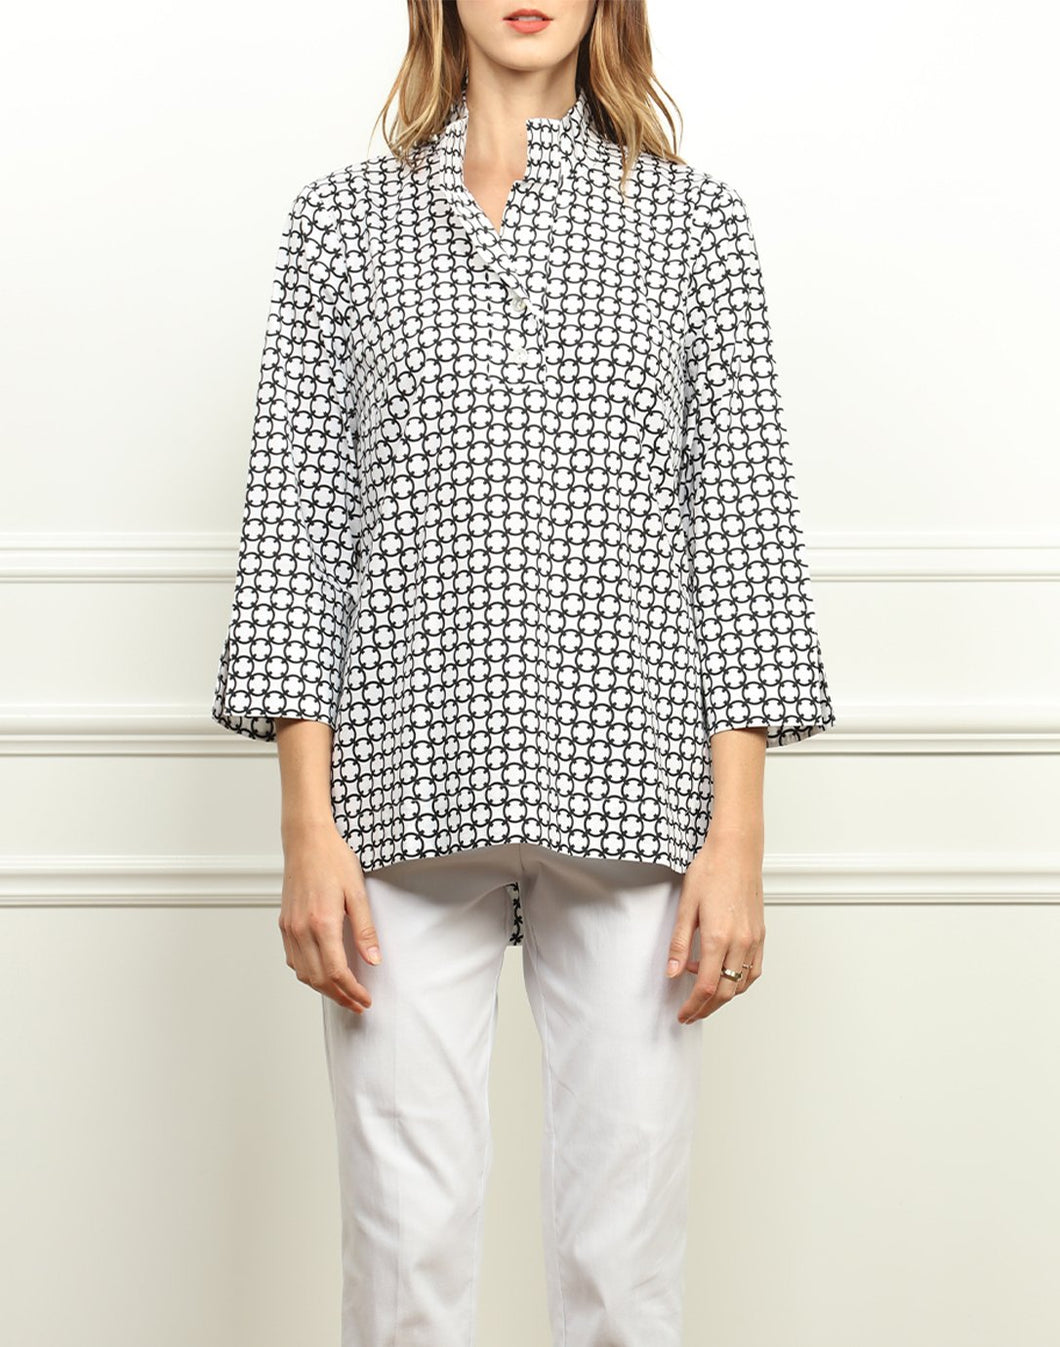 Aileen Button Back Tunic In Black/White Chainlink Print